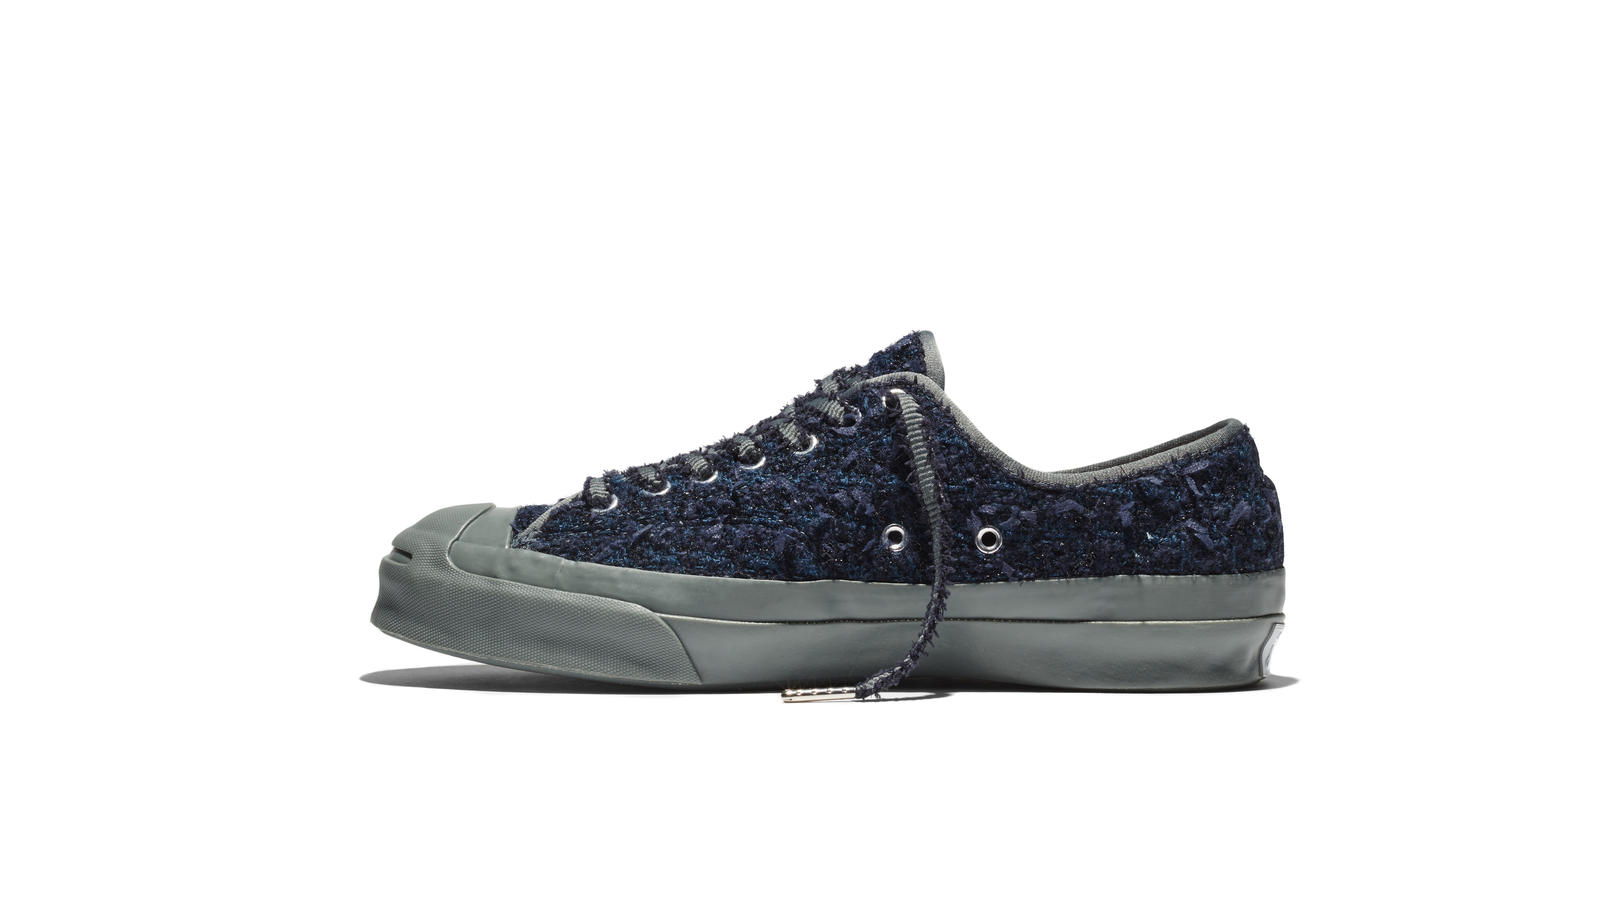 3465c74cf6a0 The Converse Jack Purcell Signature x Bunney Collection - Nike News